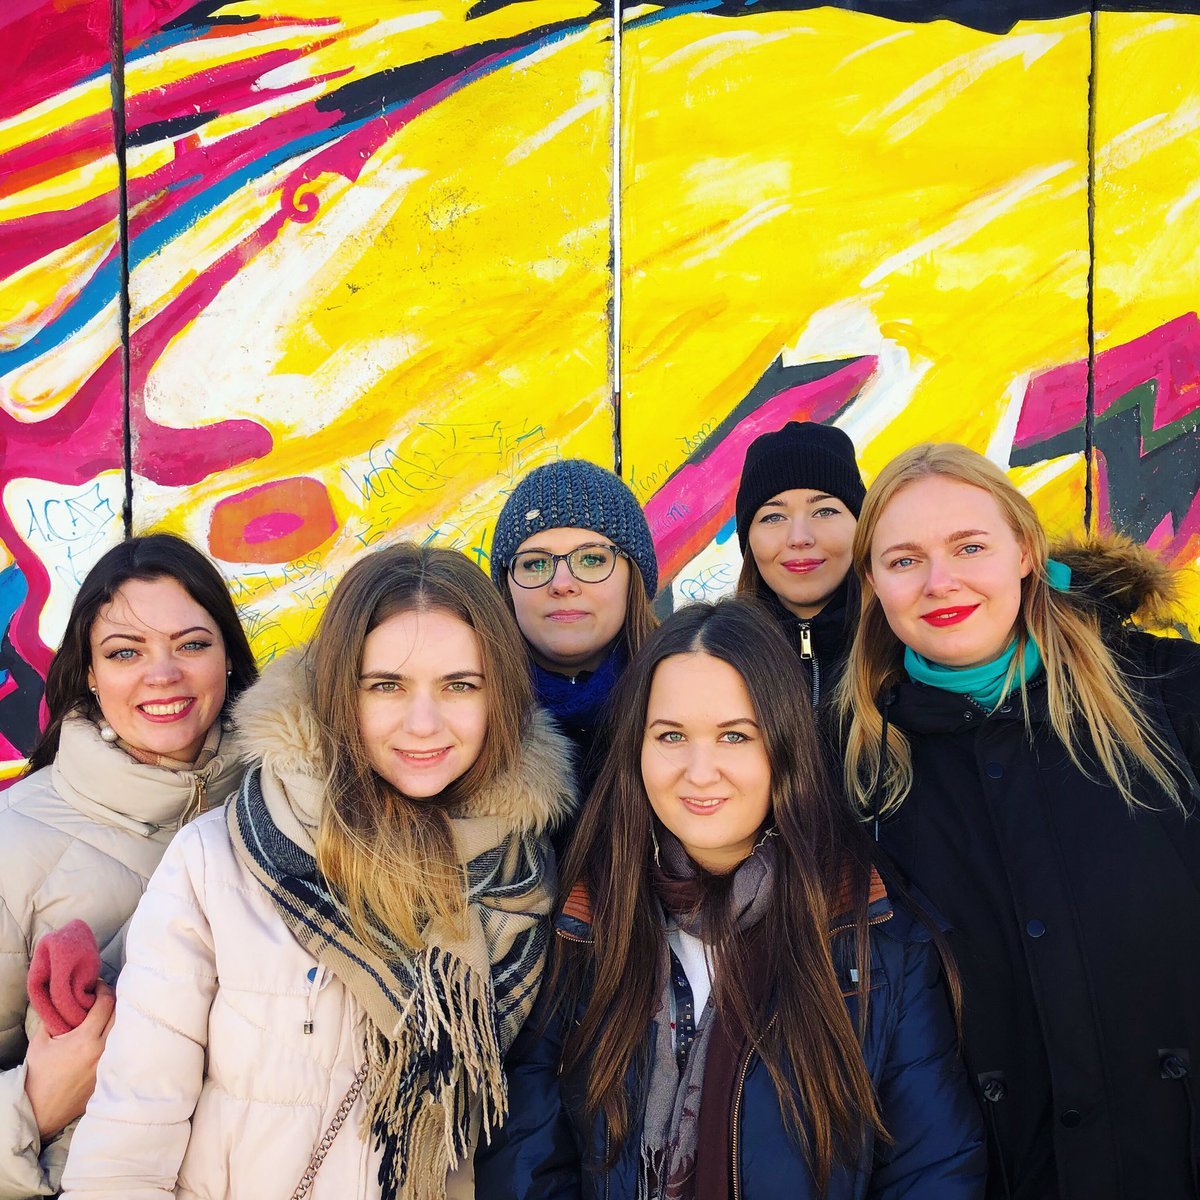 I had a wonderful time in #berlin last weekend! Thanks for your company #girls  We're a good #team #germany #deutschland #travelphotography #teamrussia #aliens #weekends #girlsquad #berlinmauer #berlinwall #berlinberlin #journey #travel #travelblog #berlincity #winterpic.twitter.com/ZNWmTQEJeI